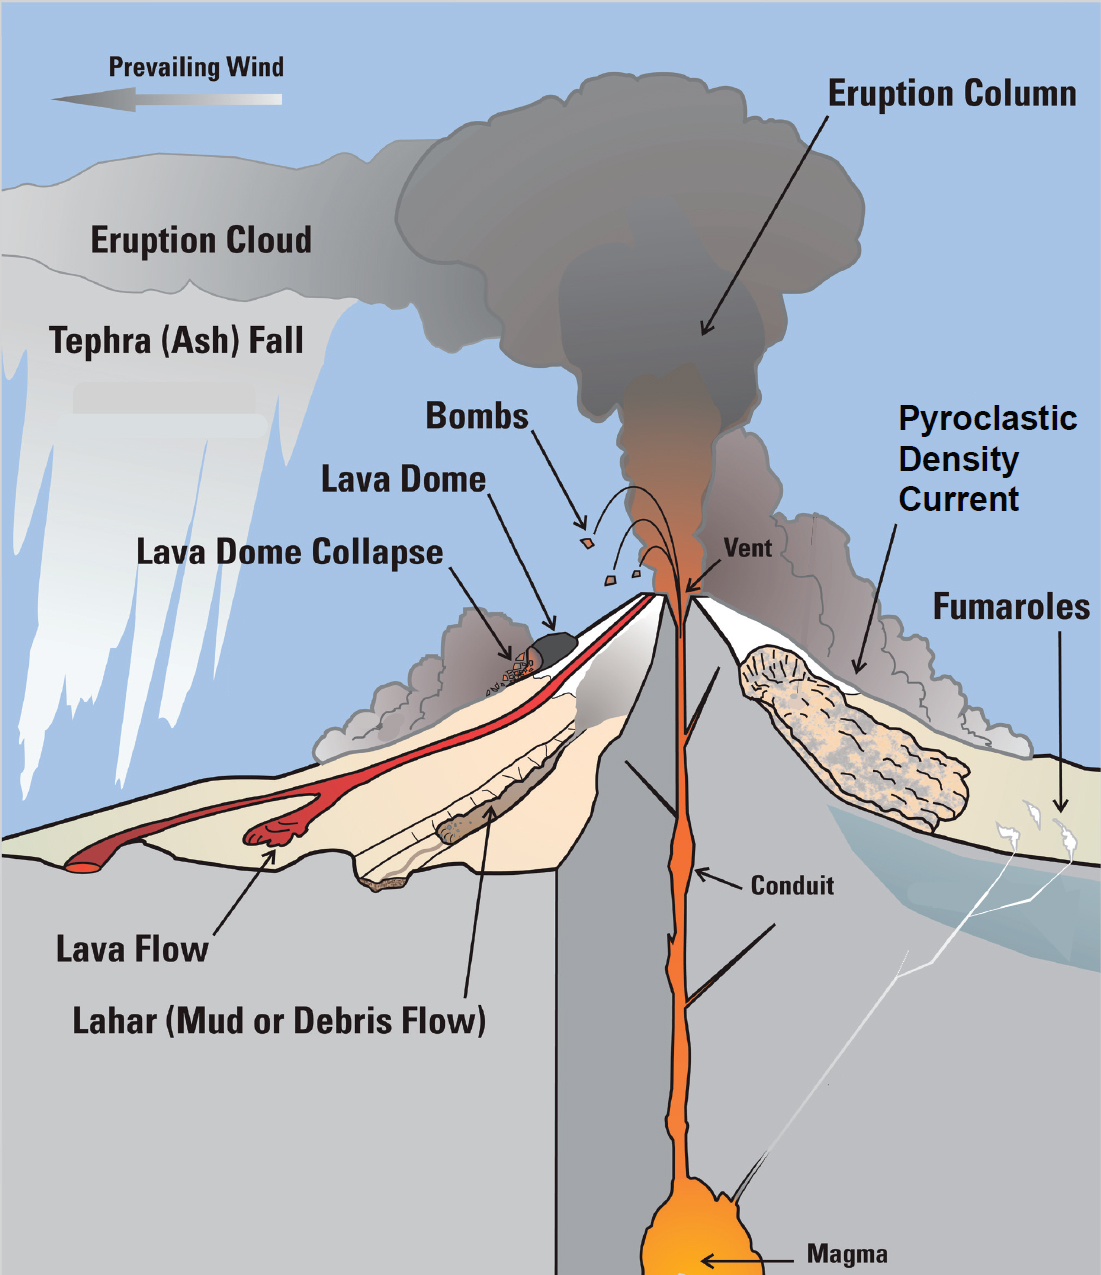 hight resolution of 1 Introduction   Volcanic Eruptions and Their Repose